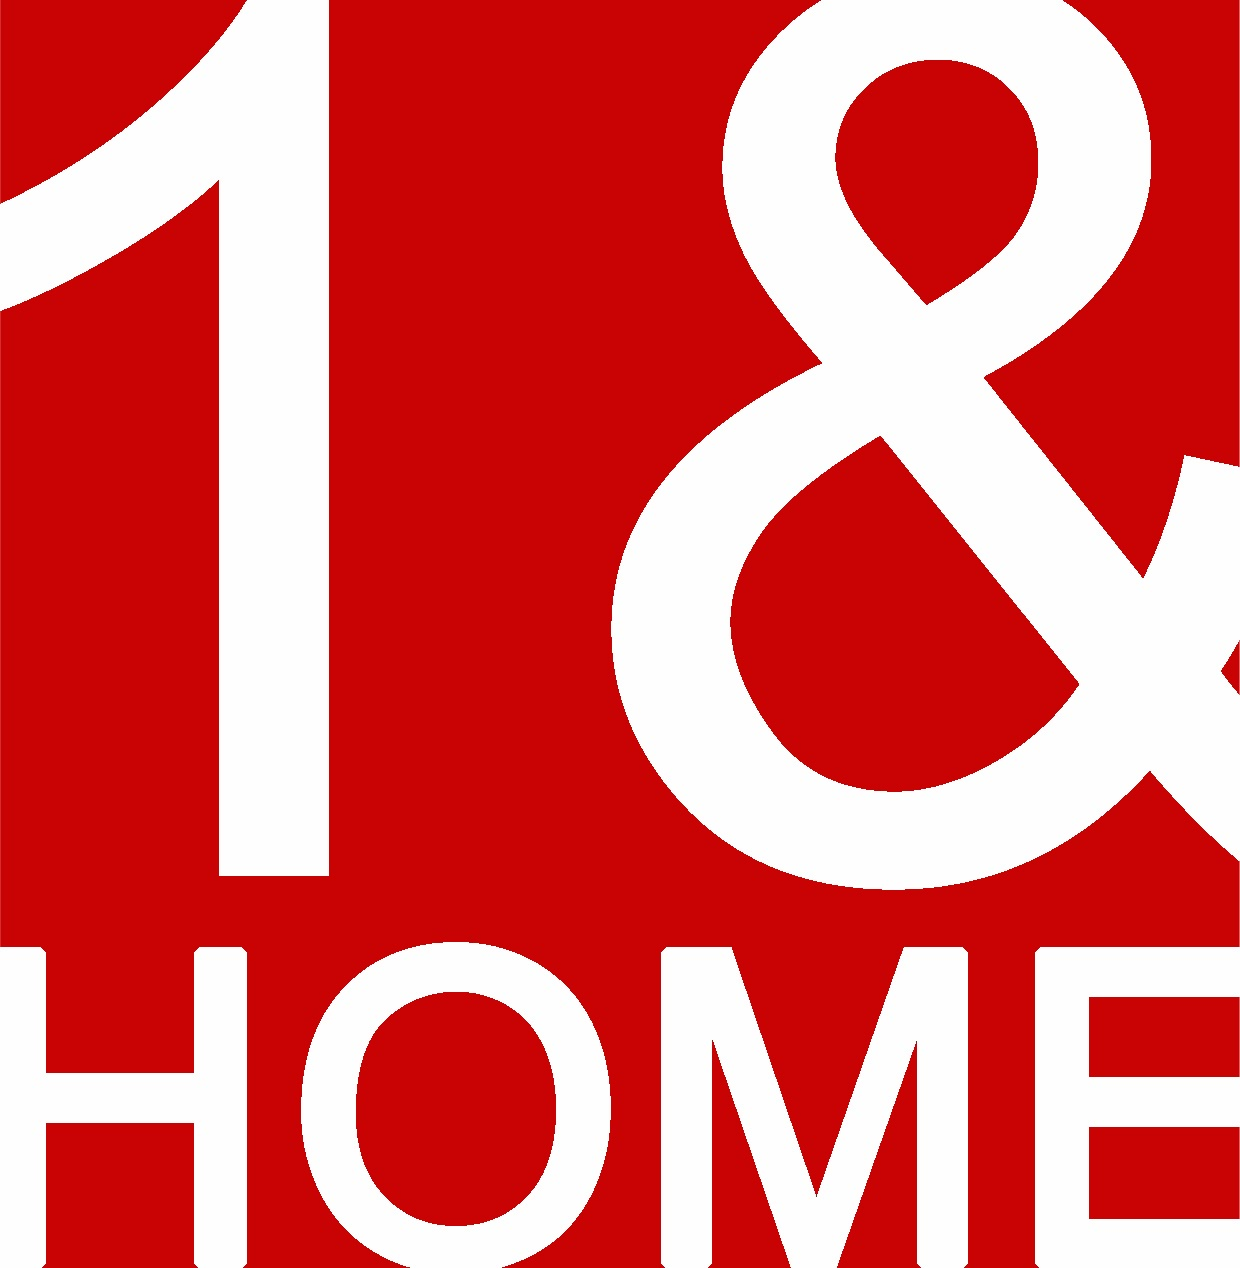 One and Home Denver, Colorado CO Http://www.oneandhome.com Logo